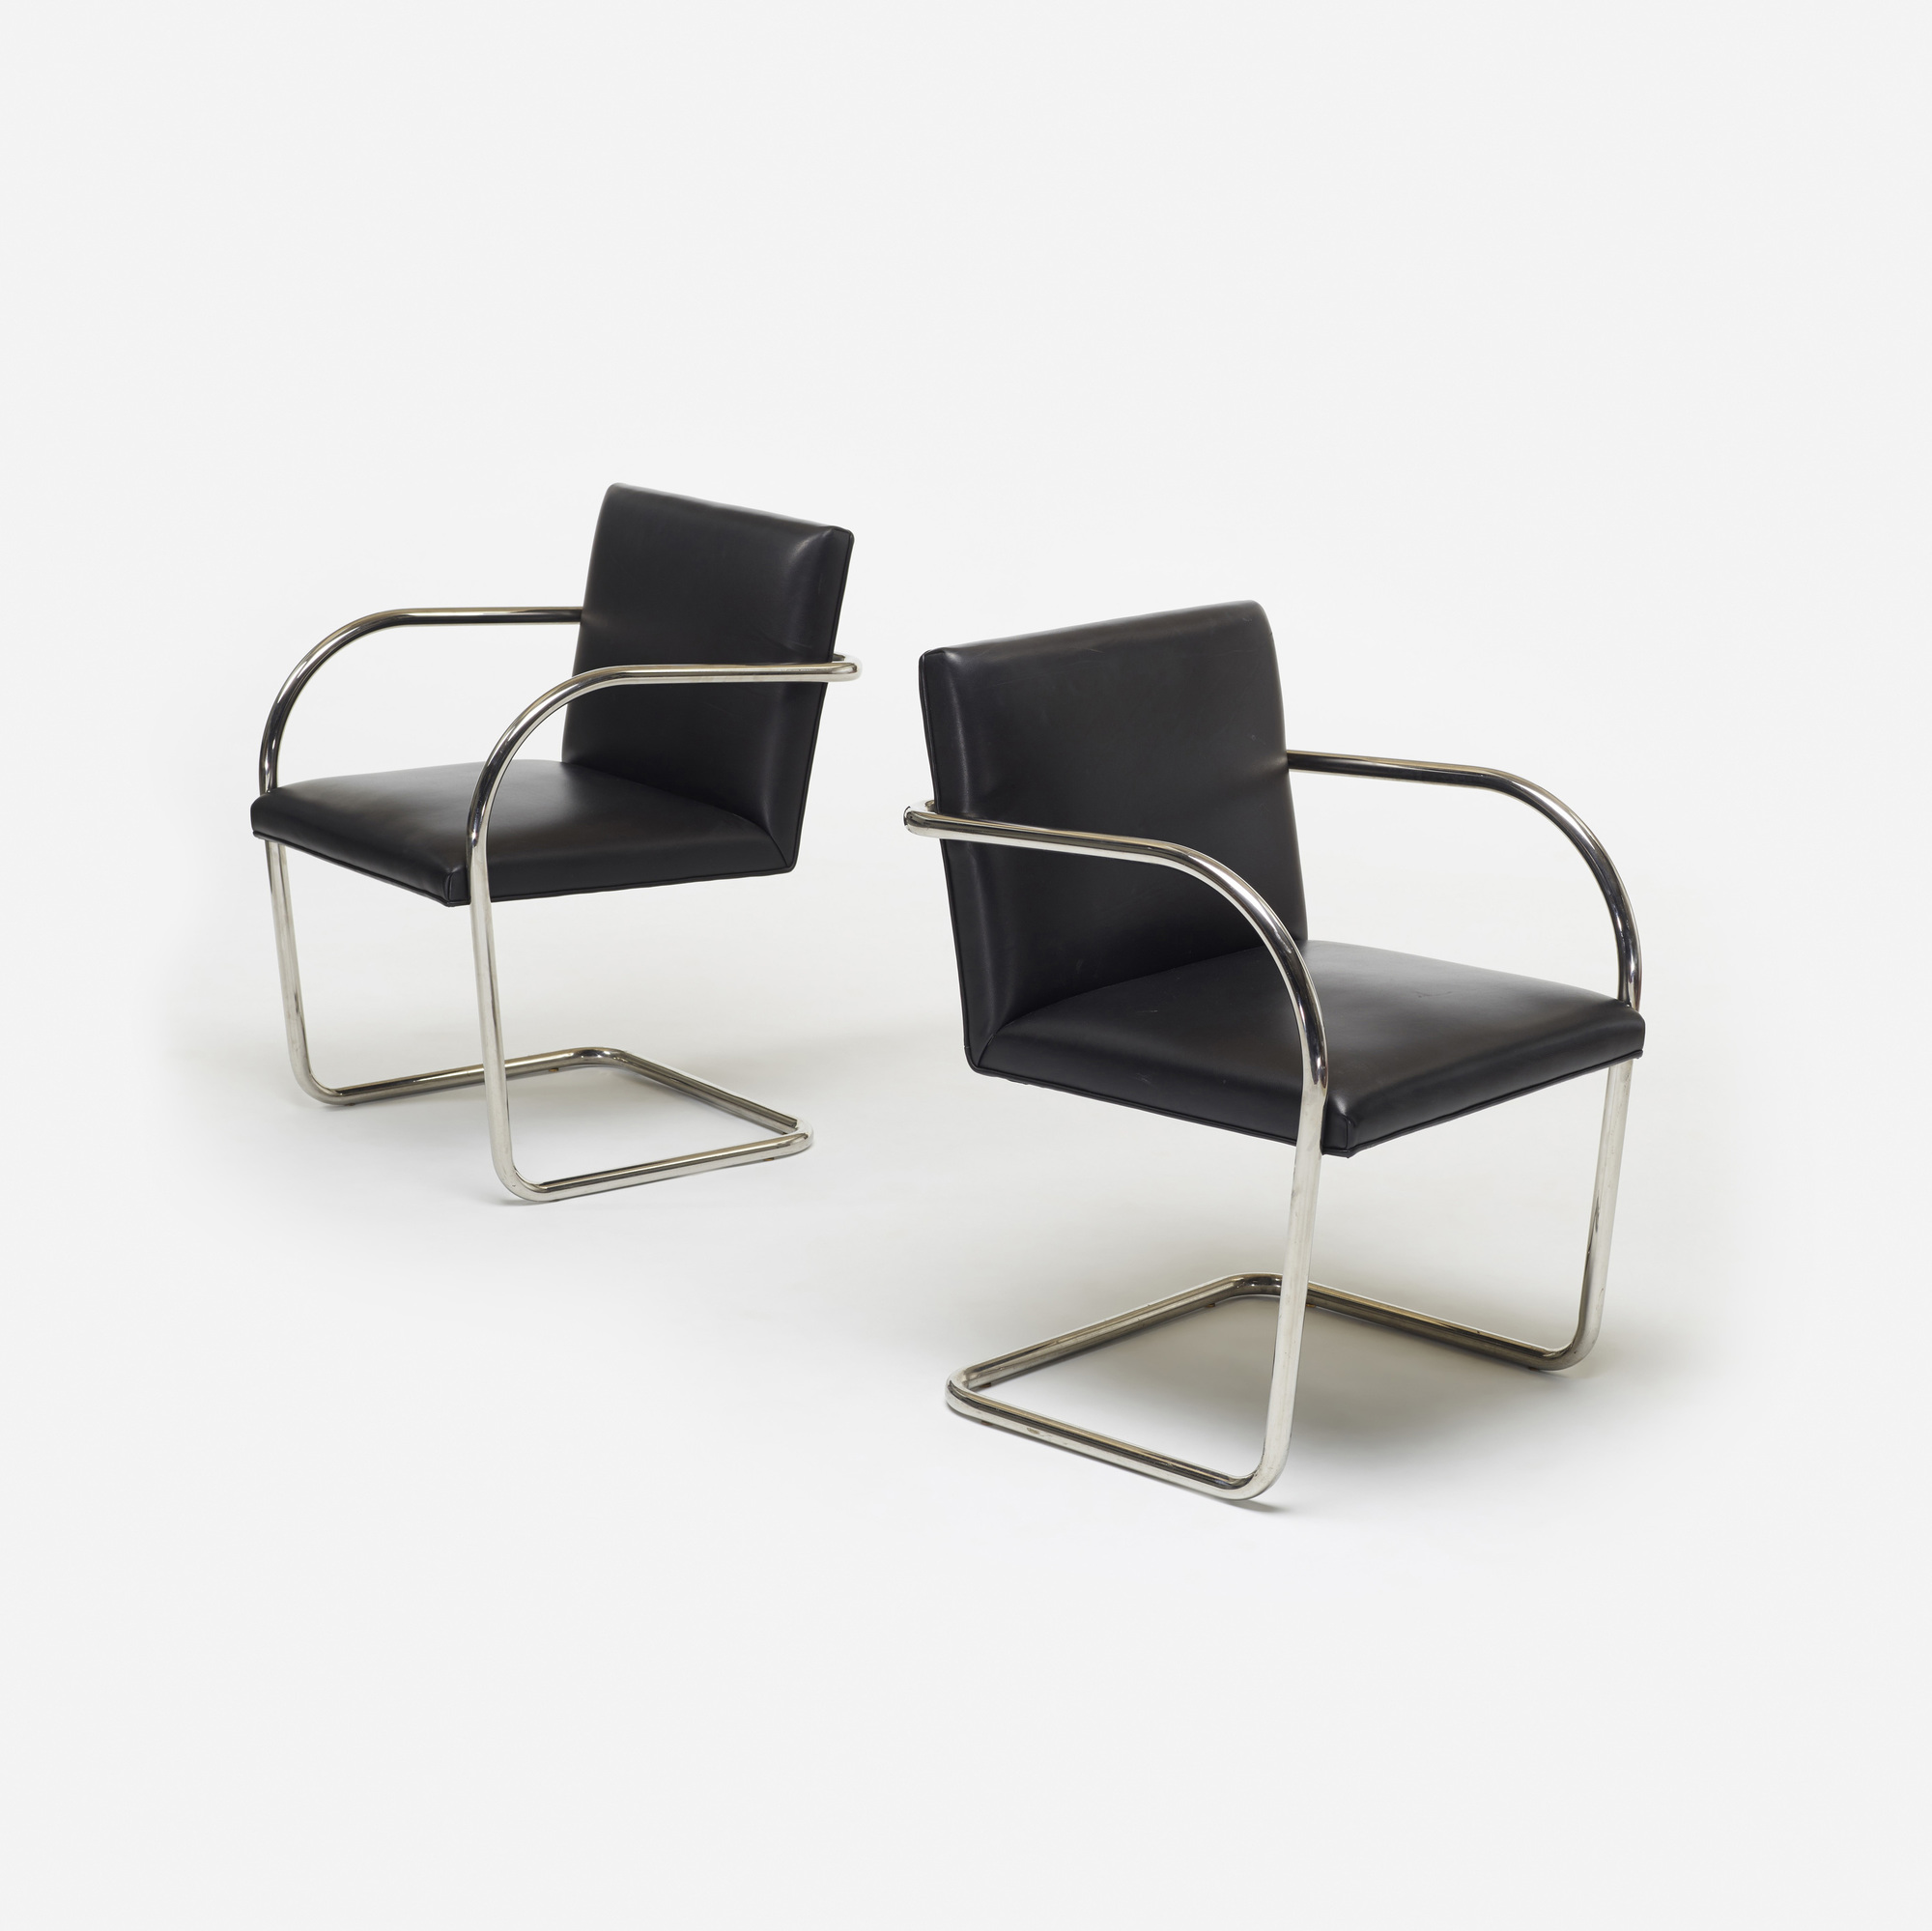 mies van der rohe chair brno soldmid century chairs modern leather cowhide chairs pair brn. Black Bedroom Furniture Sets. Home Design Ideas